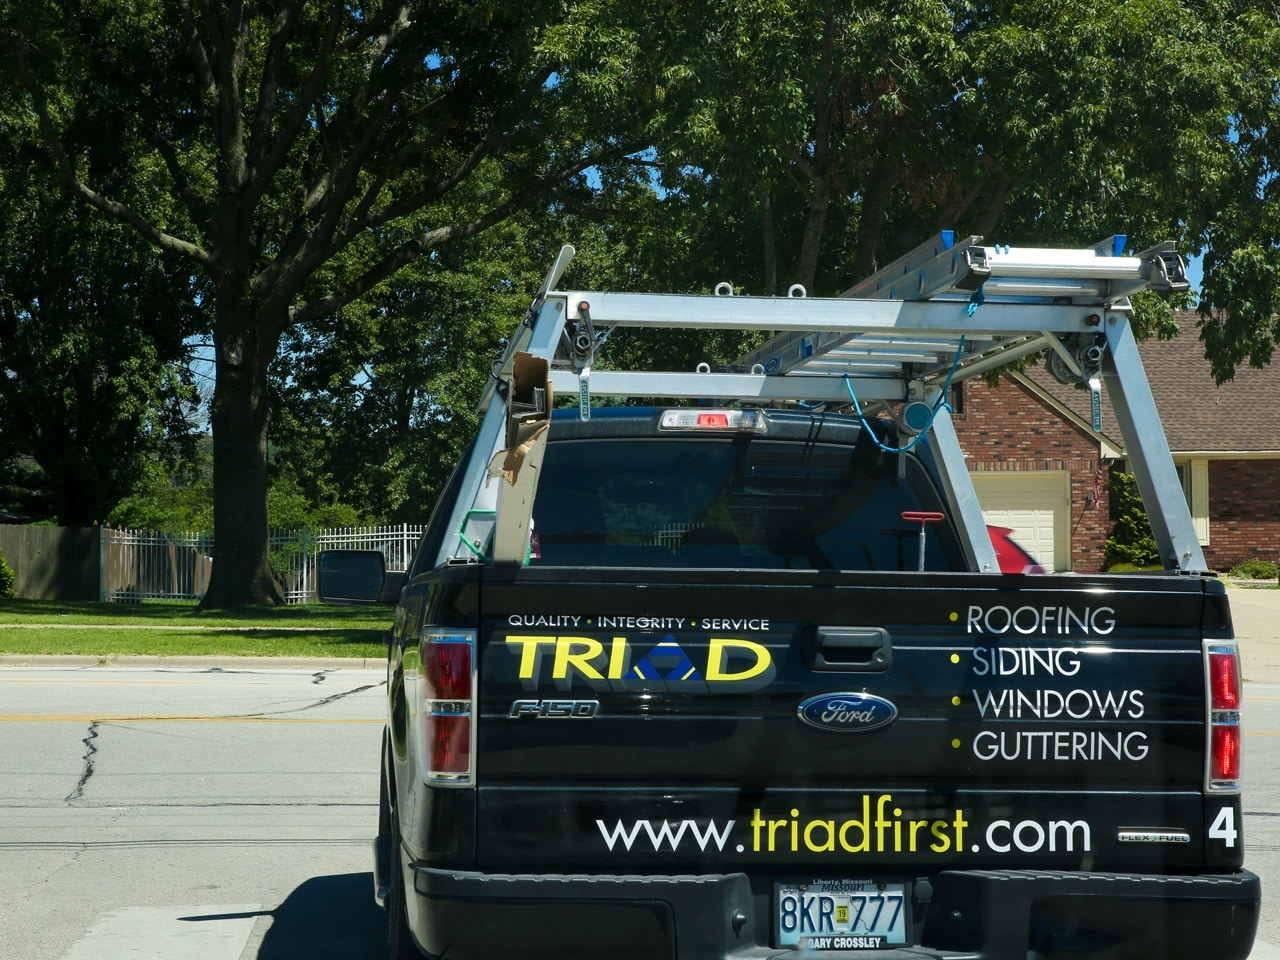 Triad Roofing Truck